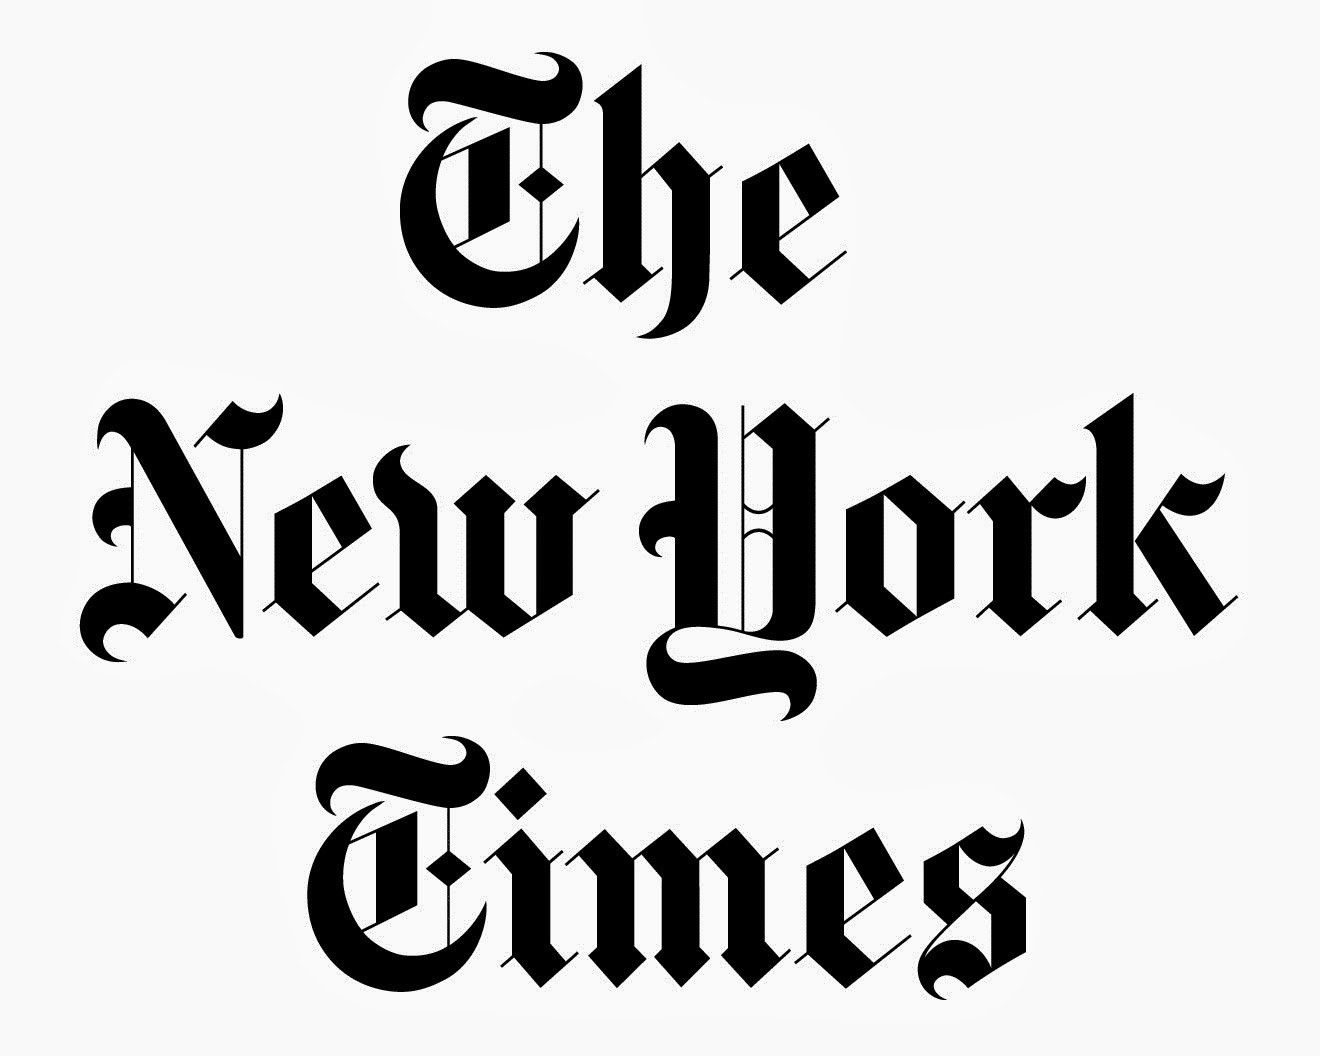 July 17, 2011: The New York Times Introduces 'Confidential' to the World: GROUND BREAKING.